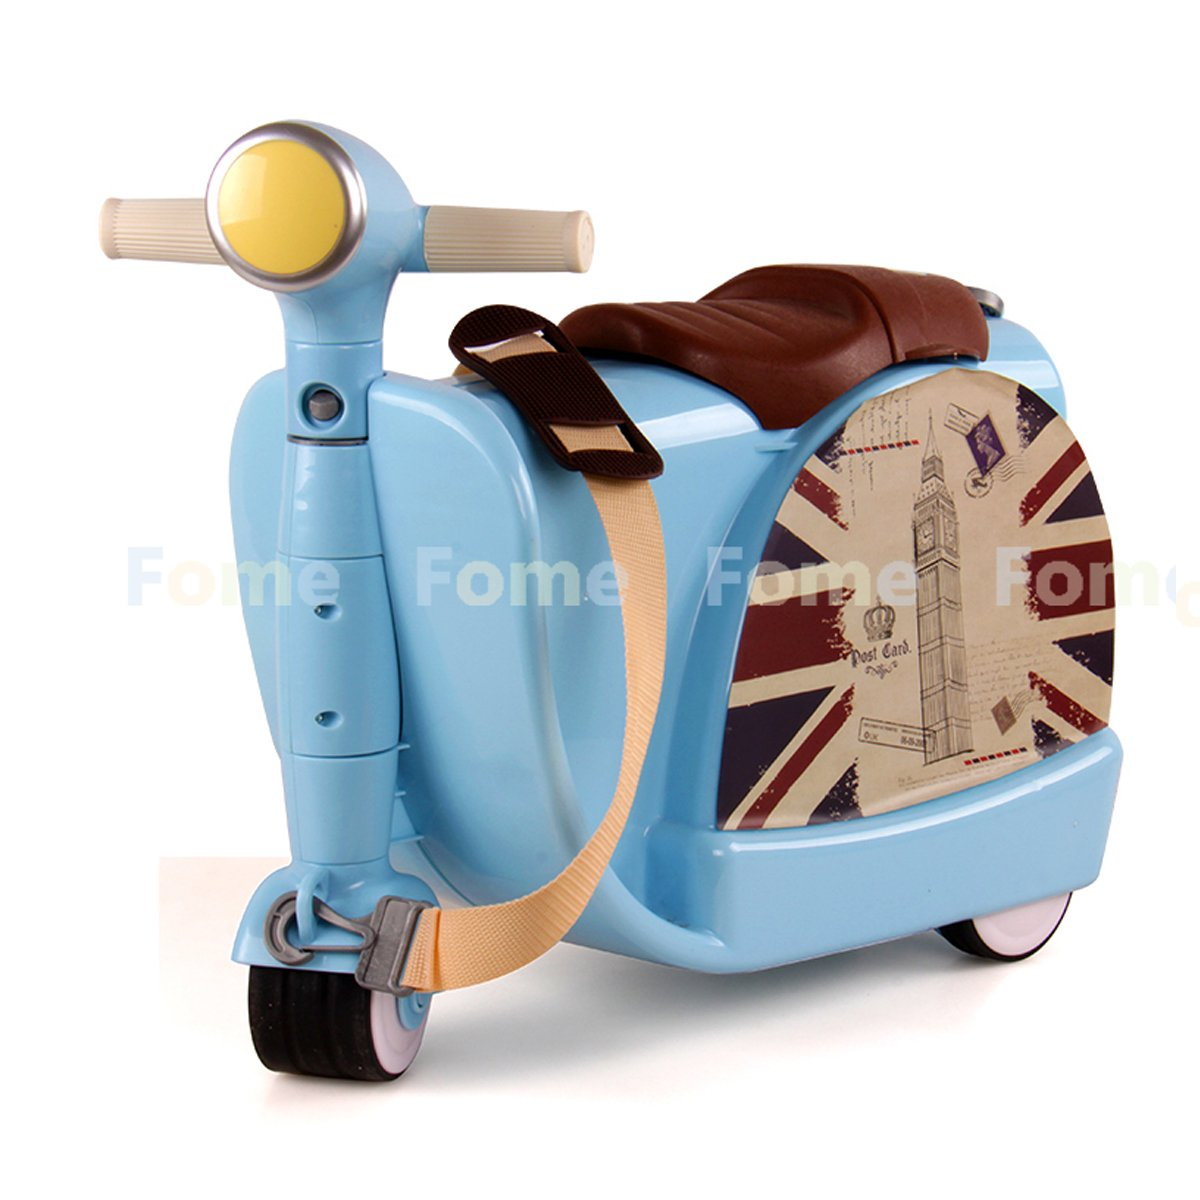 Amazon.com: FOME Ride-On Suitcase Children's Multifunction Luggage ...